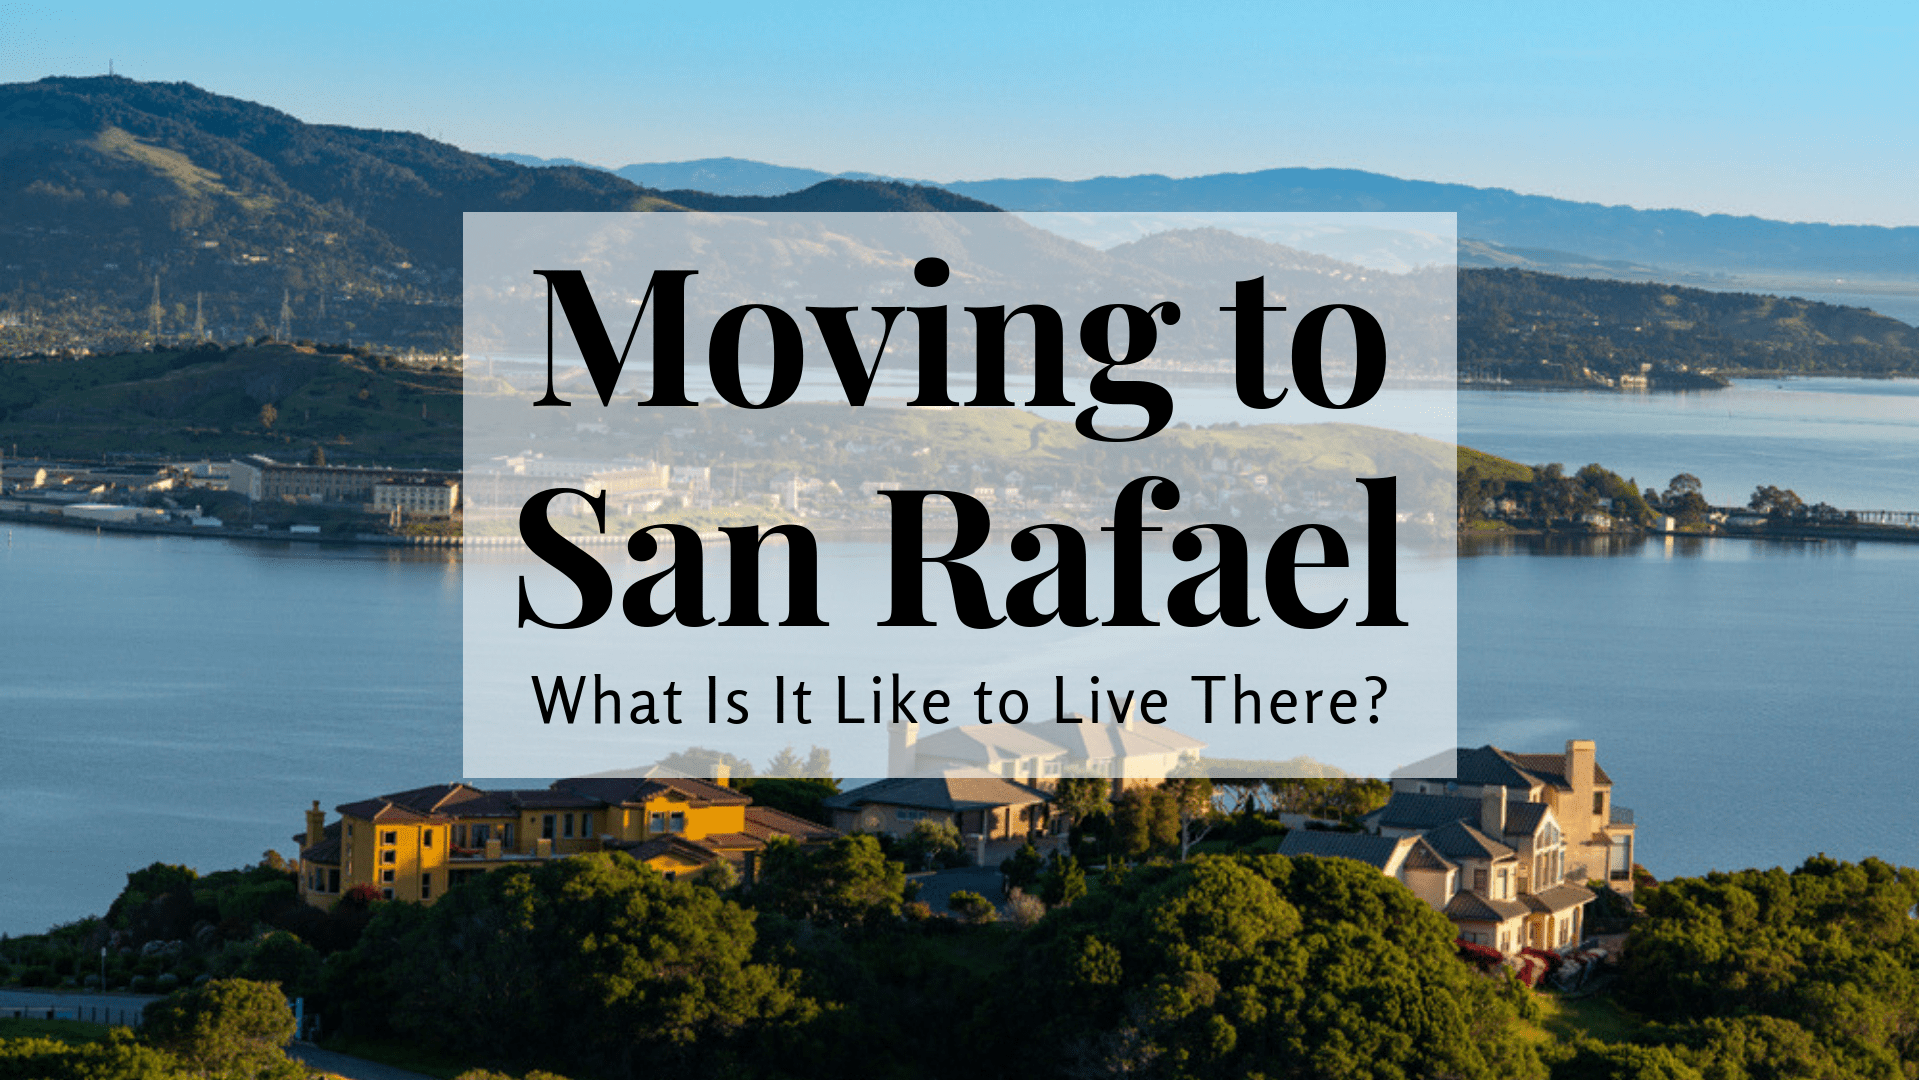 Moving to San Rafael - What Is It Like to Live There?